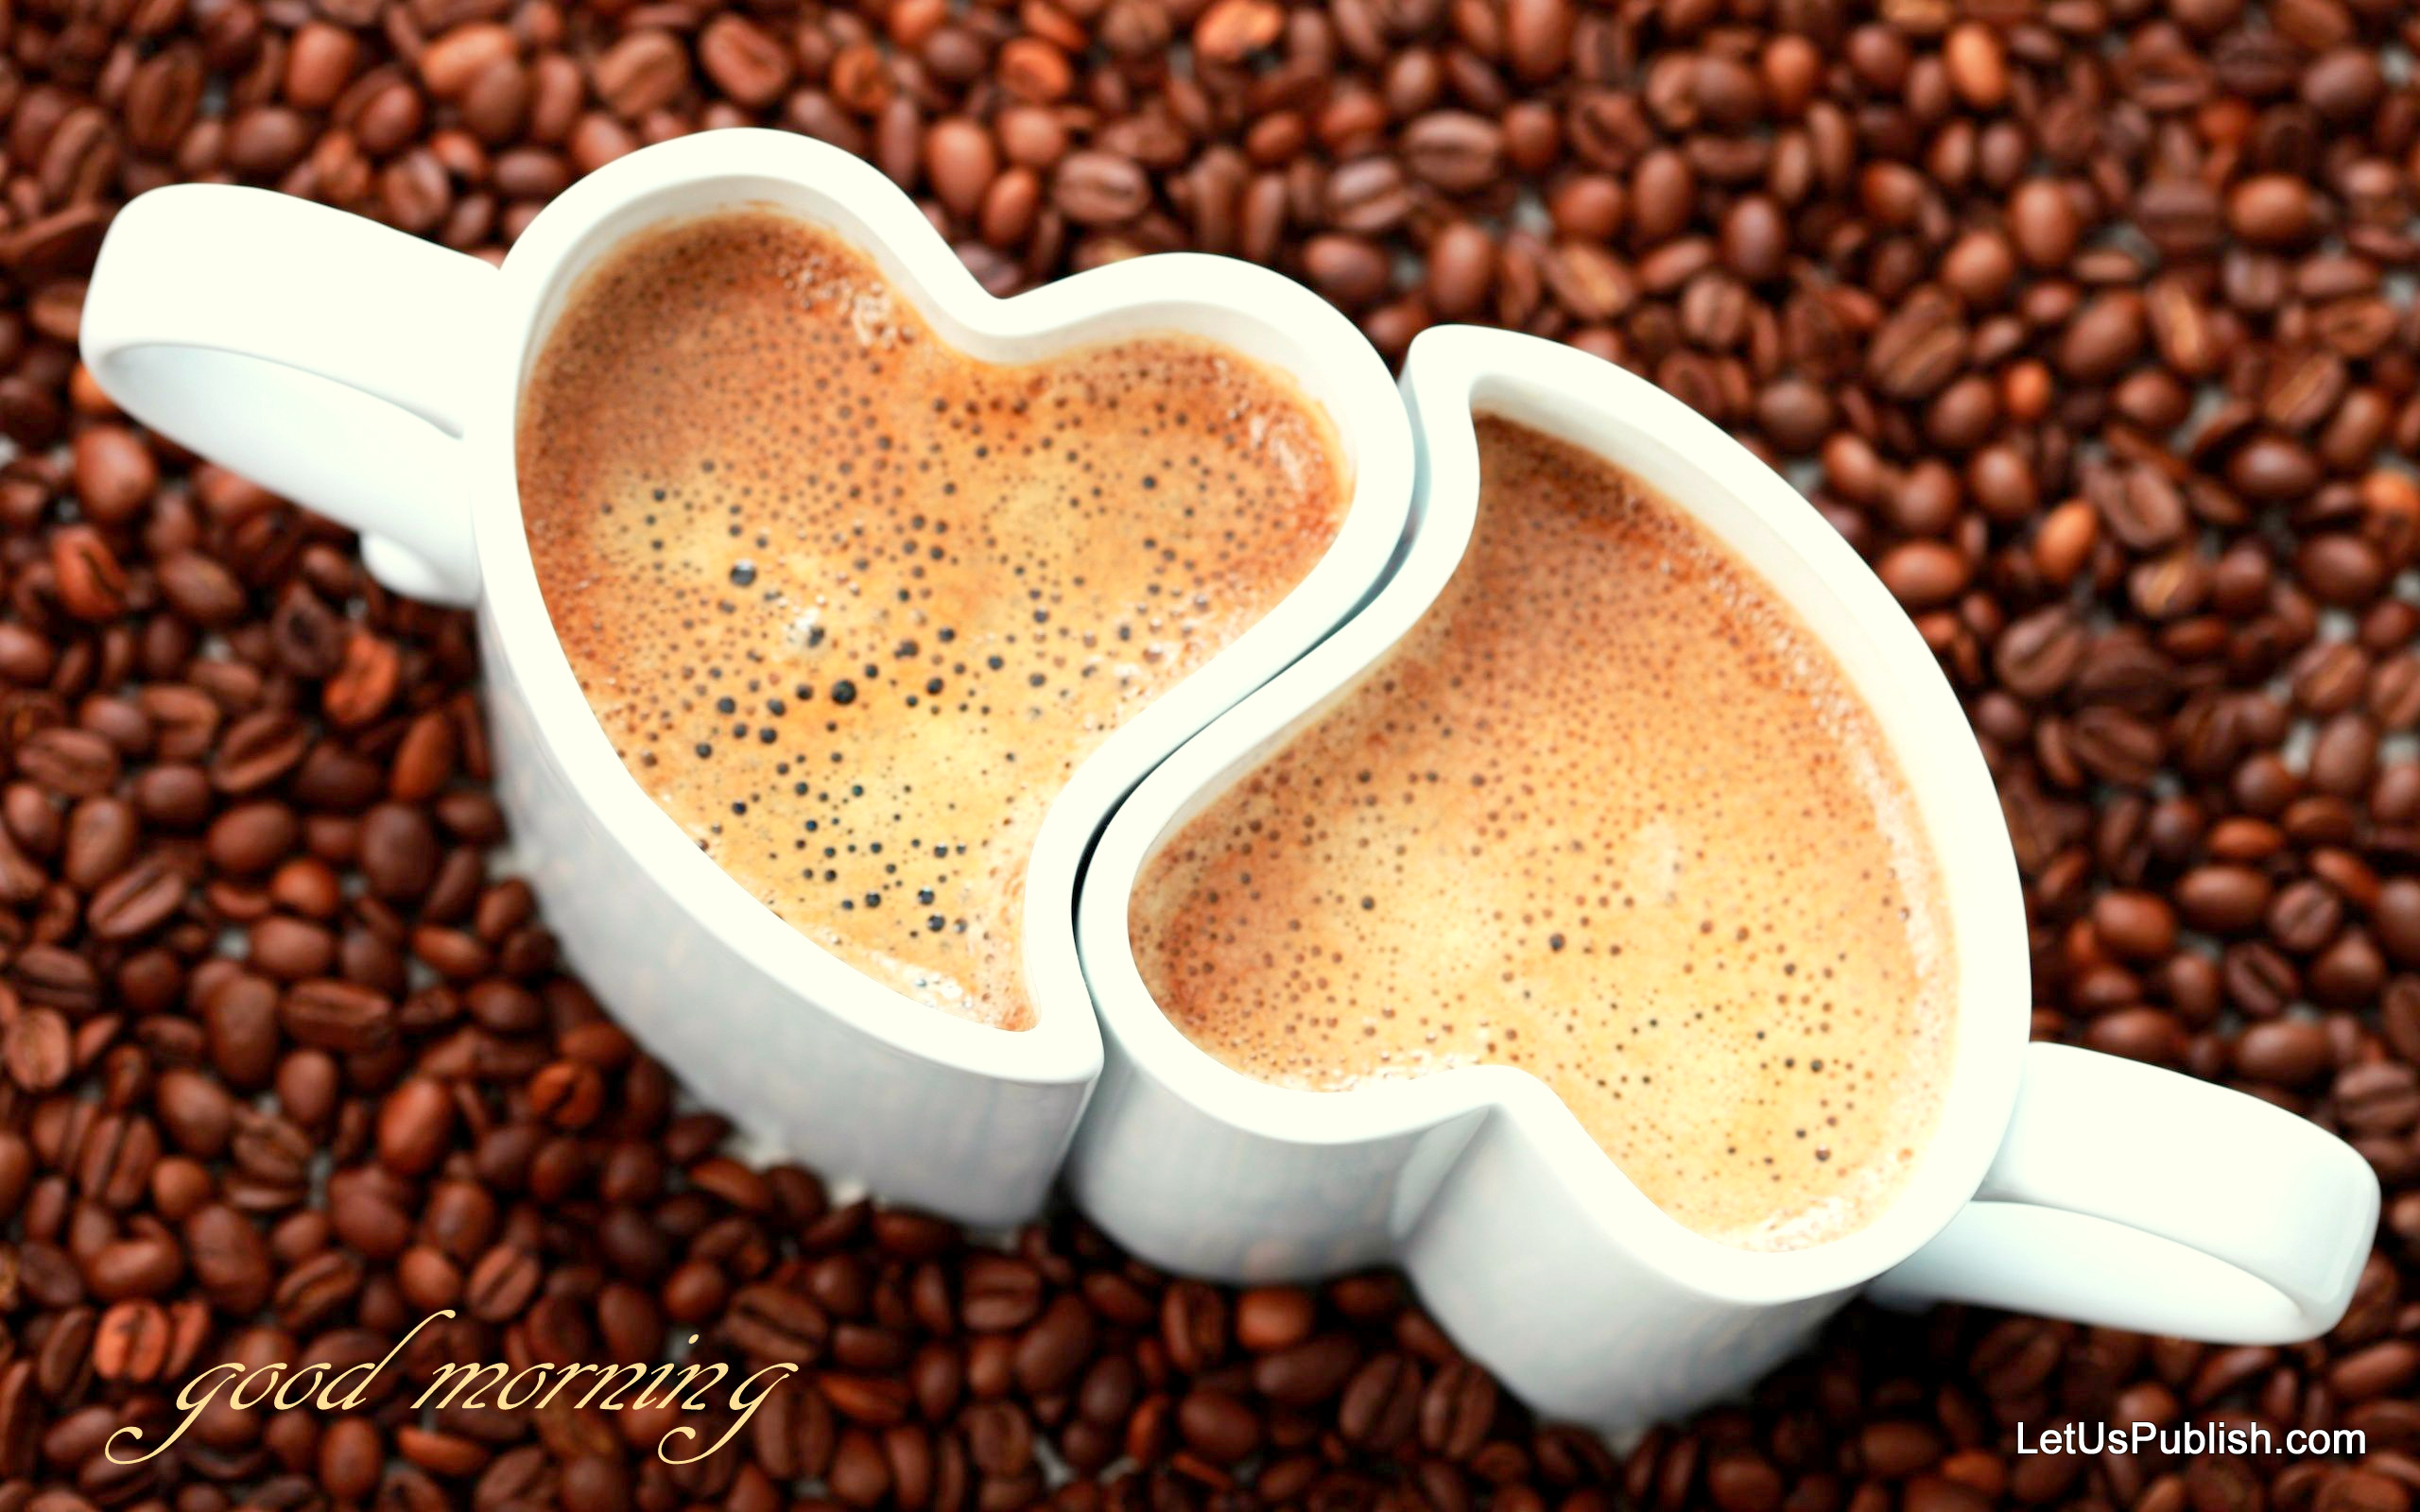 Good Morning Coffee Pics: Good Morning Wallpapers Free Download